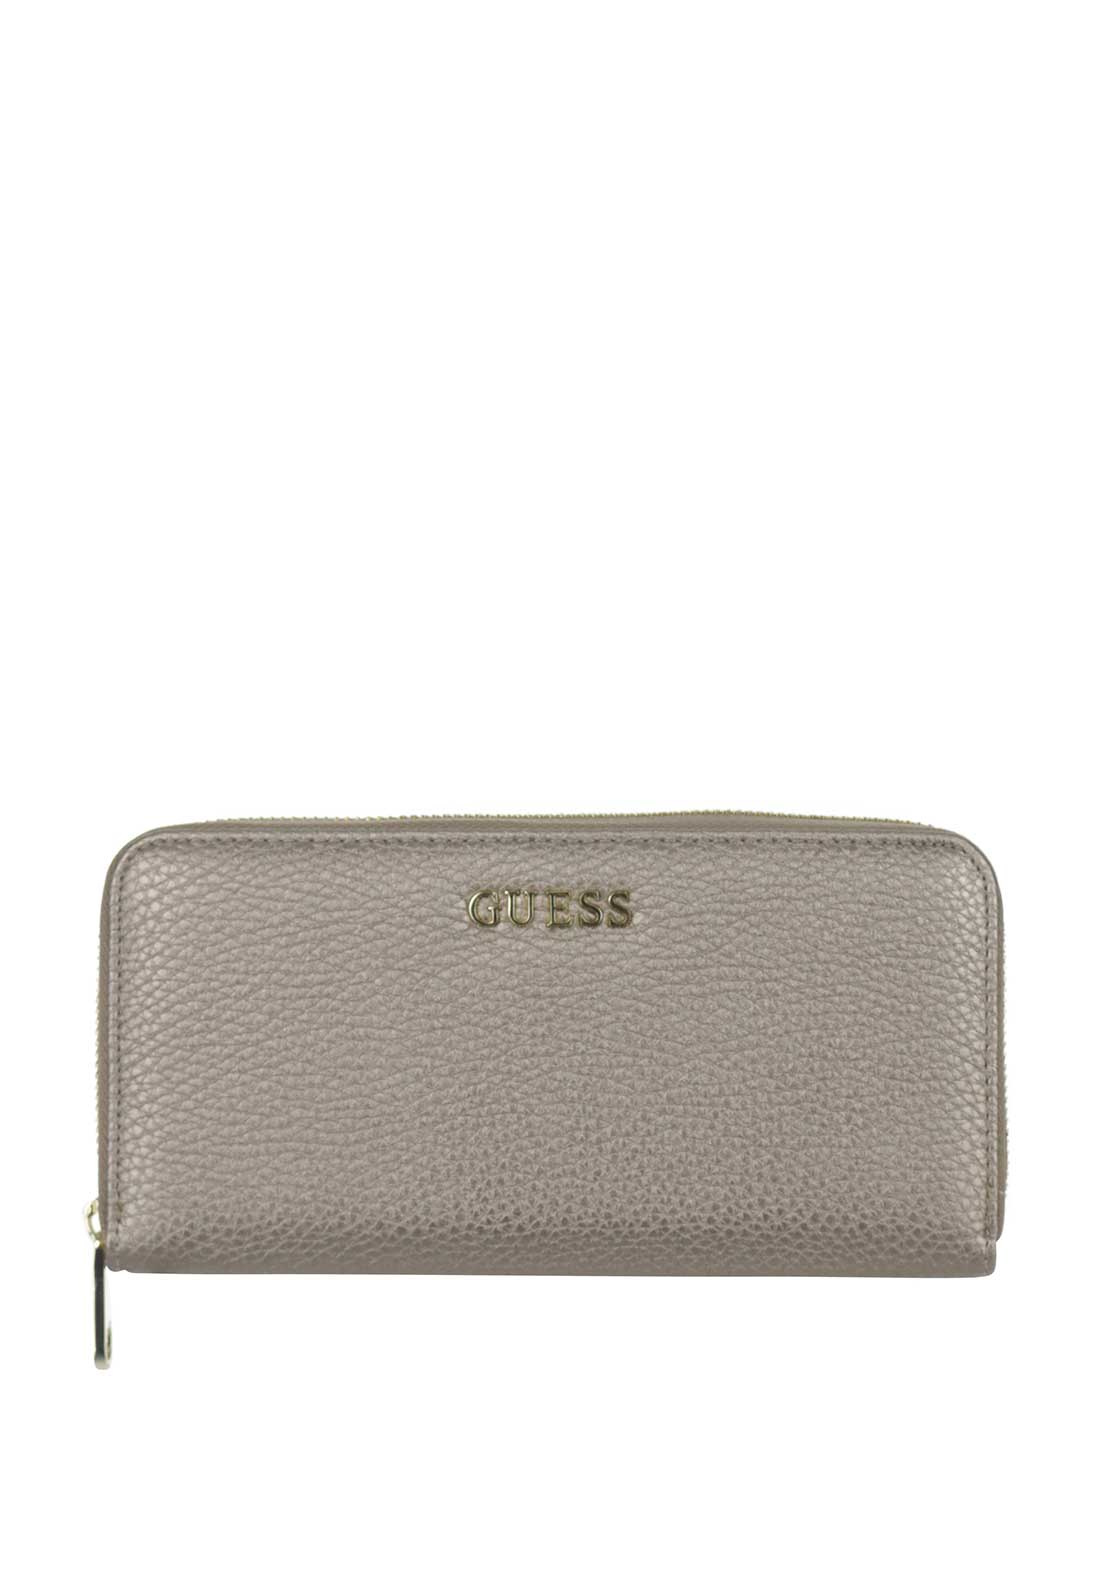 Guess Small Zip around Purse, Pewter